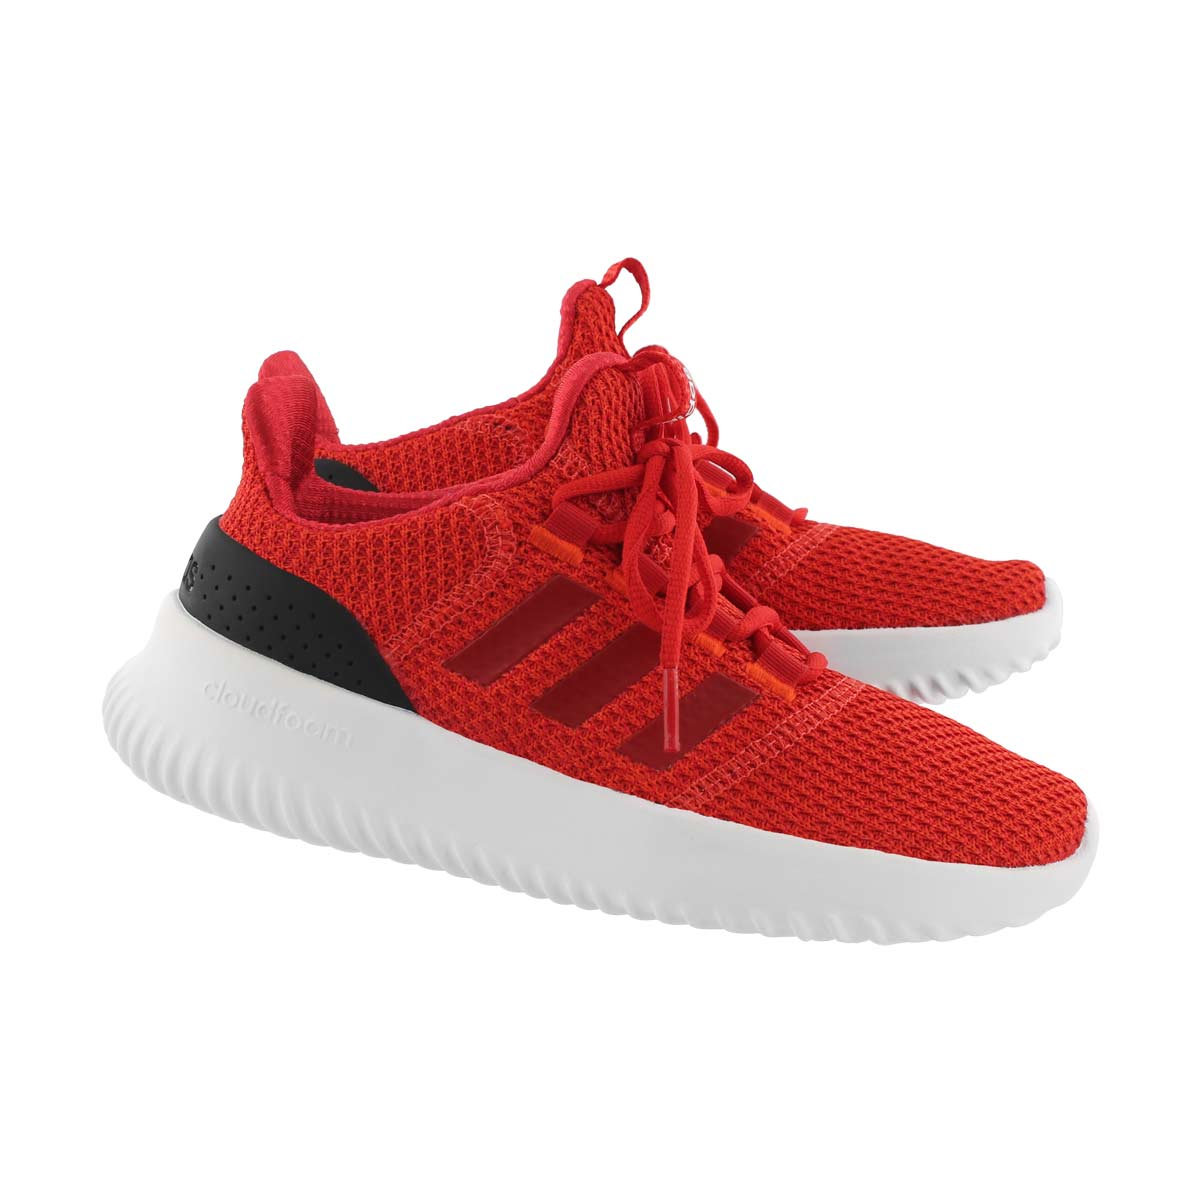 Chlds Cloudfoam Ultimate red/blk runners